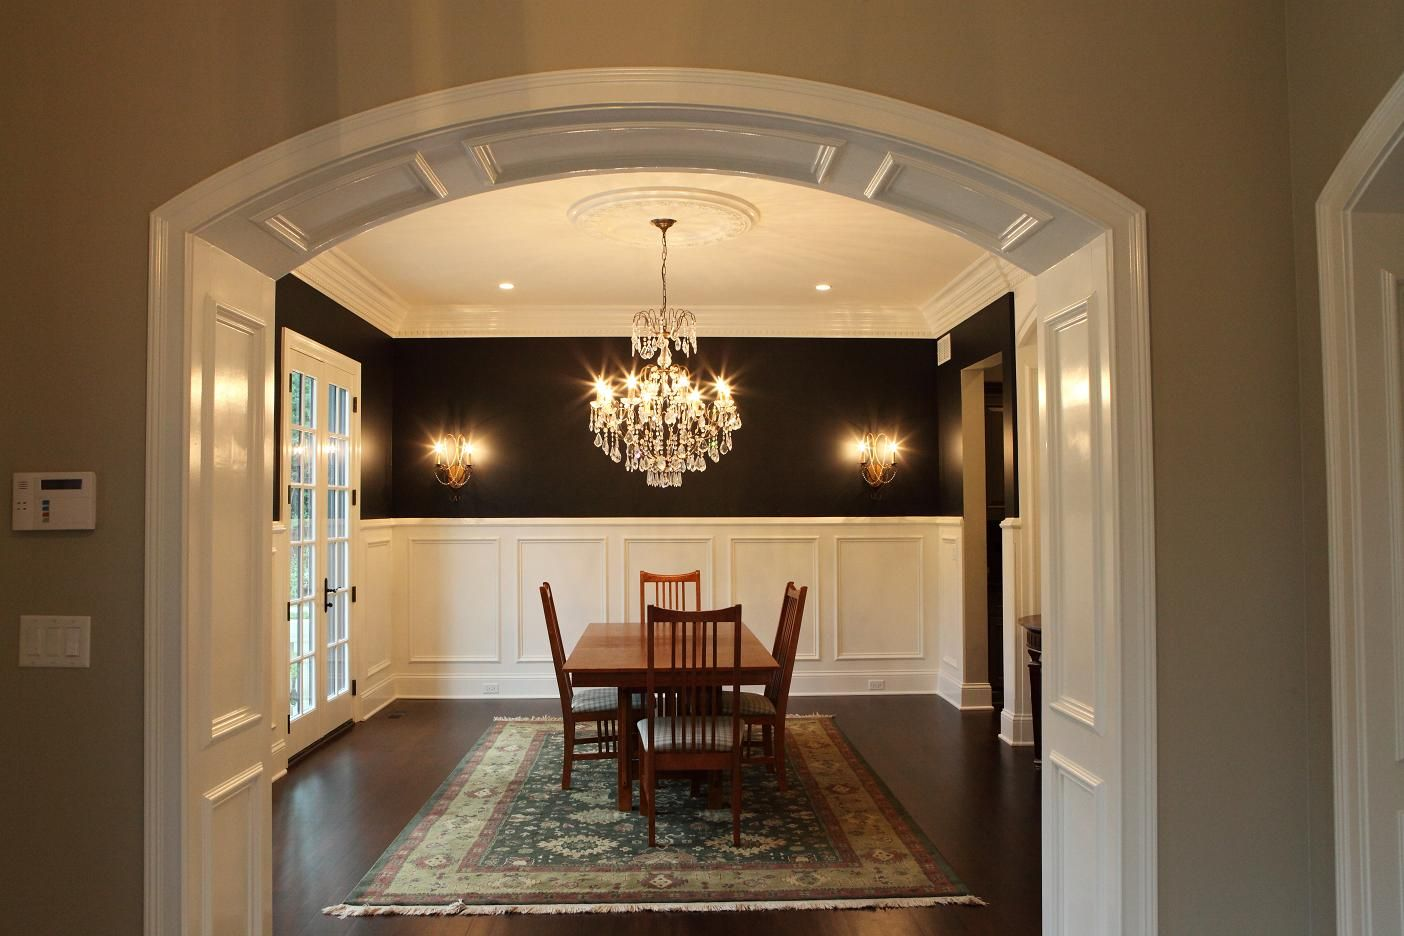 Archway Ideas Interior Arched Openings Photos Top With Panels Consists Of